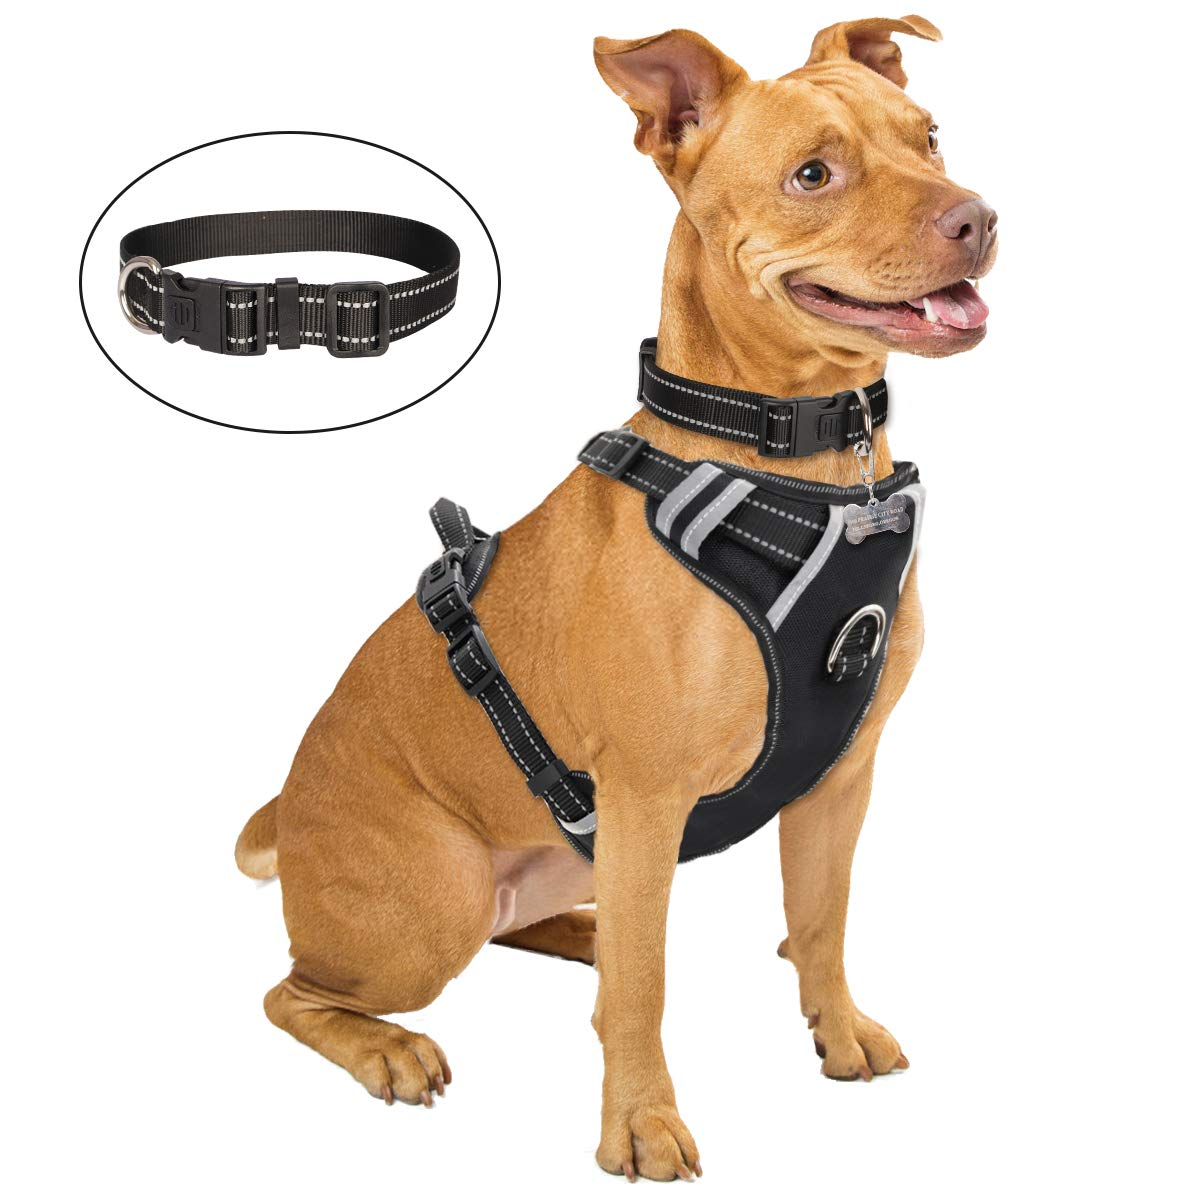 WINSEE Dog Harness No Pull, Pet Harness with Dog Collar, Adjustable Reflective Oxford Outdoor Vest, Front/Back Leash Clips for Small, Medium, Large, Extra Large Dogs, Easy Control Handle for Walking by WINSEE